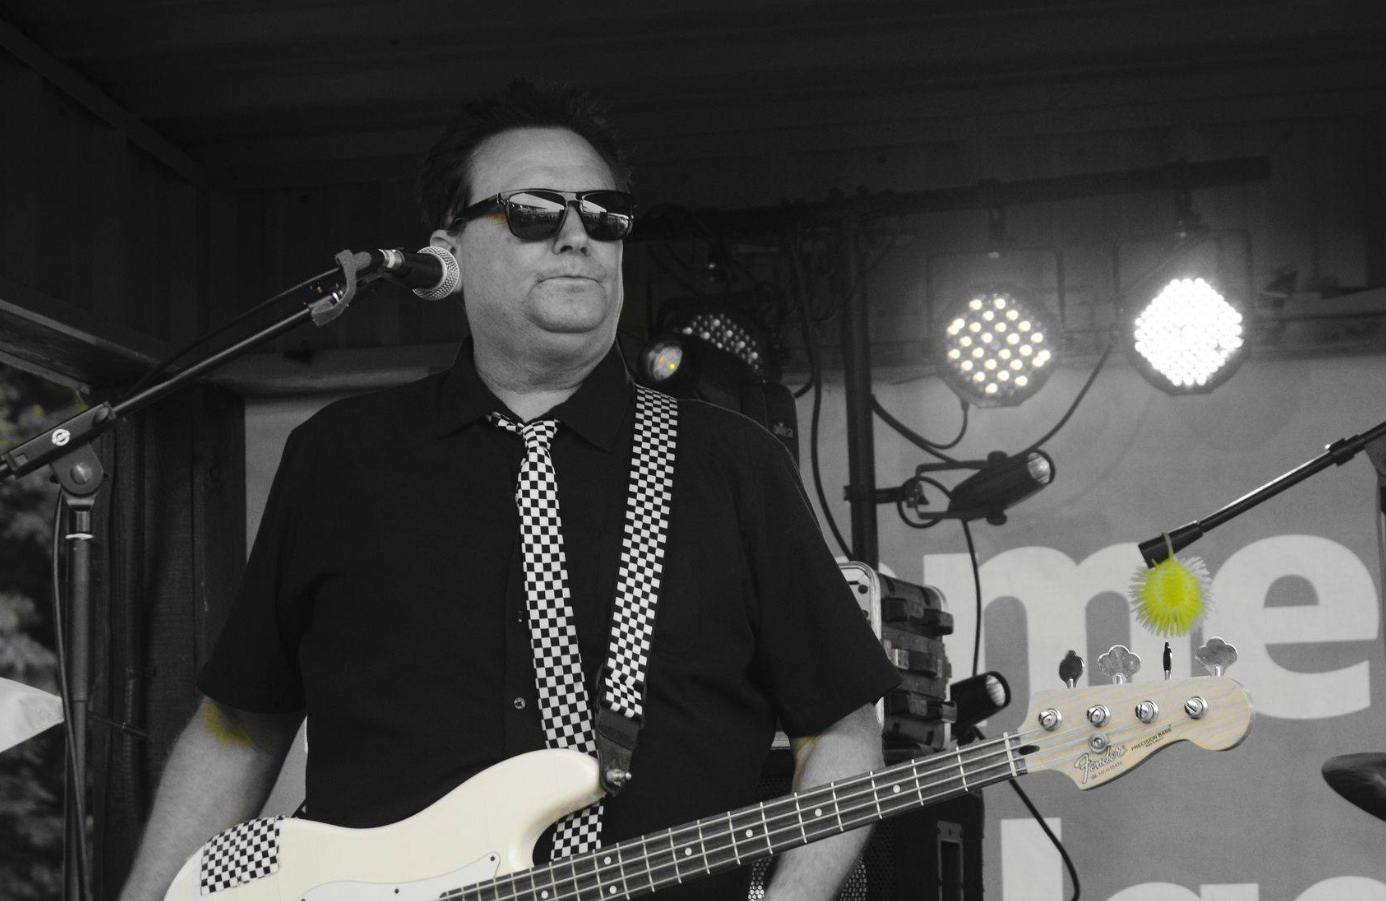 The M80s at 80s Beach Party